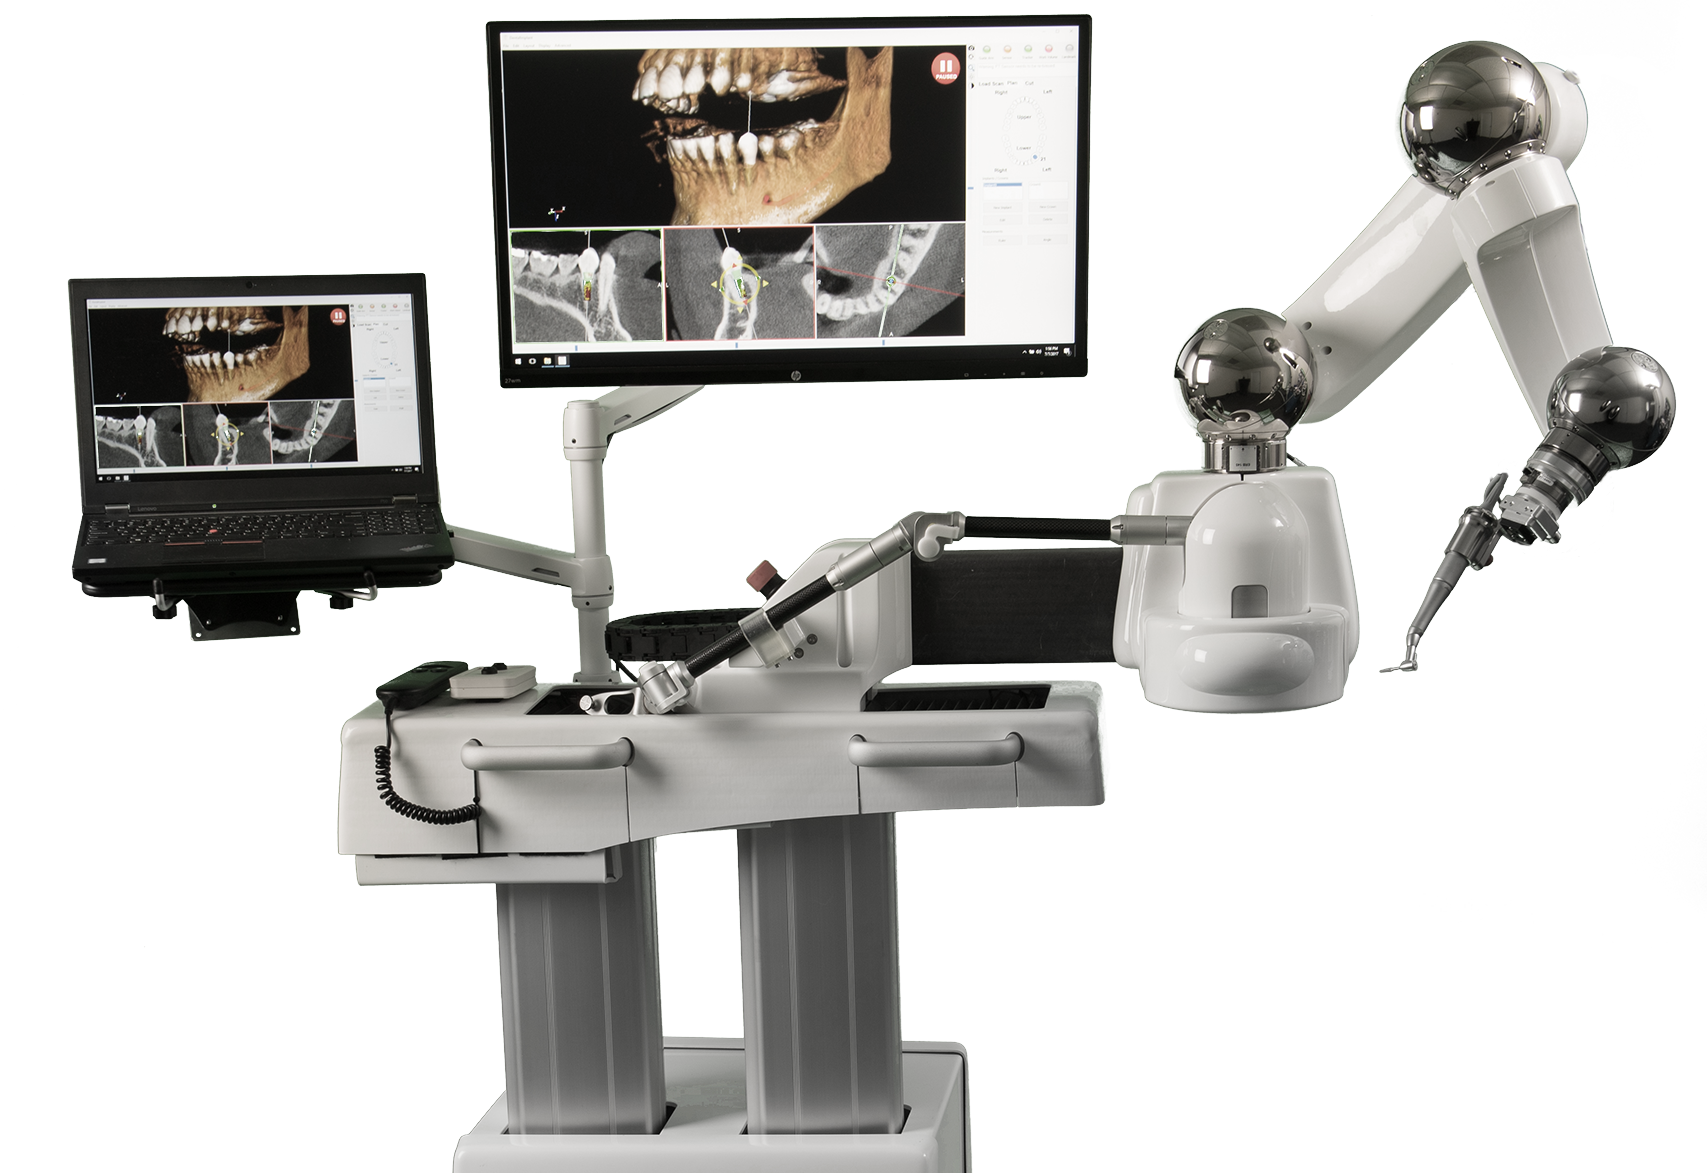 Accelerating Development of Surgical Robotics